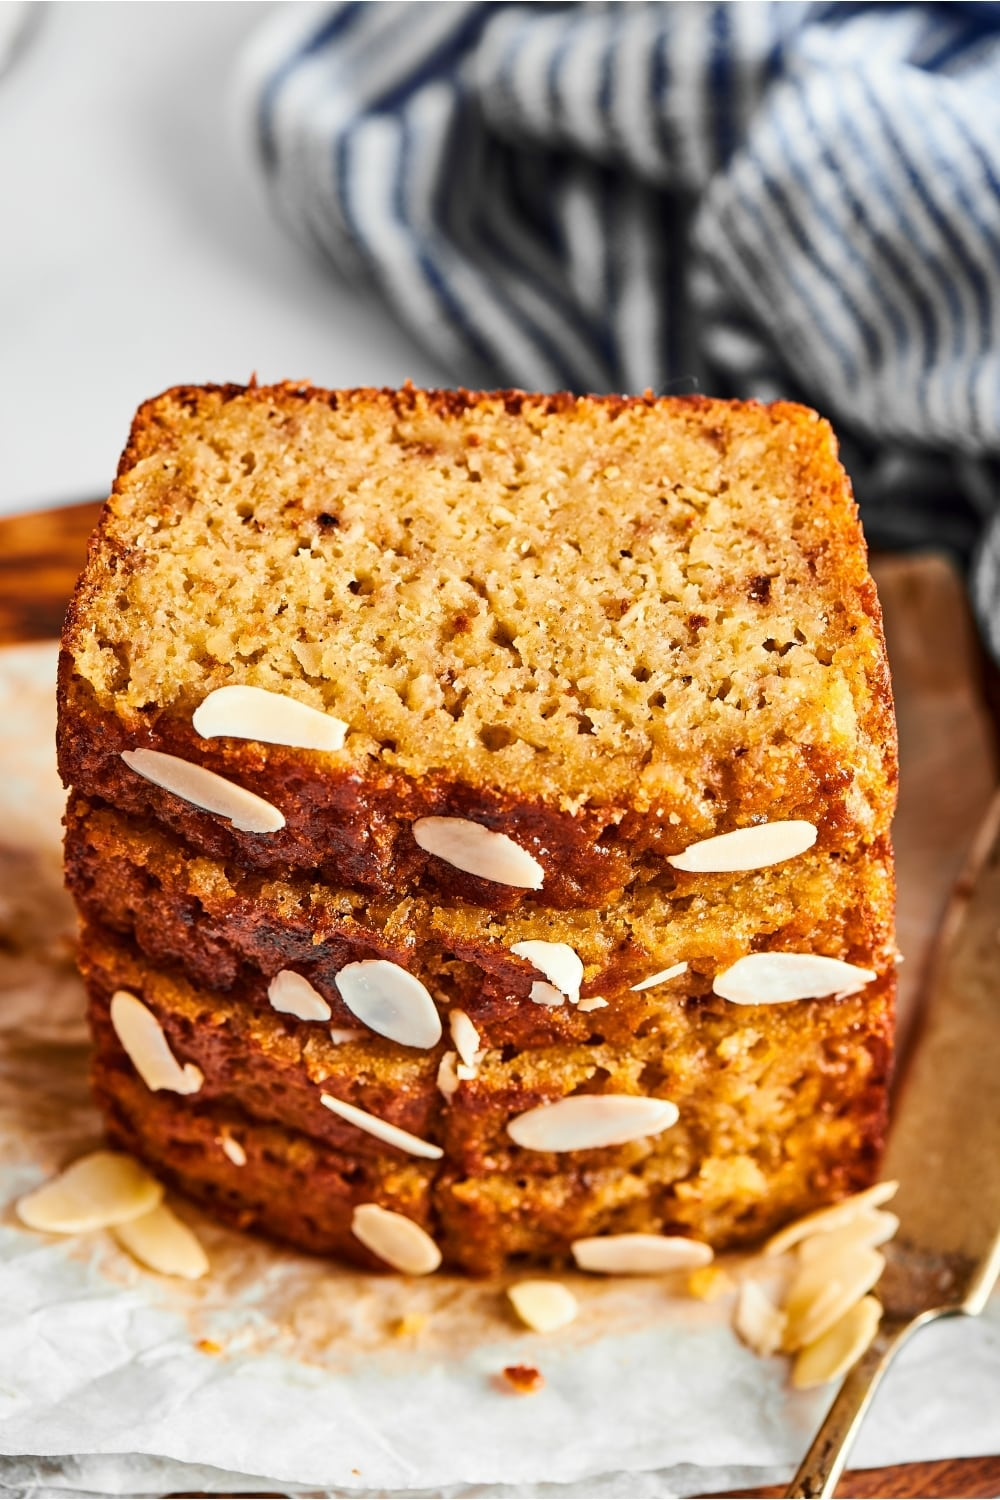 Four slices of banana bread stacked on top of one another on a piece of parchment paper. There are some sliced almonds in front of the Stack and part of a serving knife next to it.